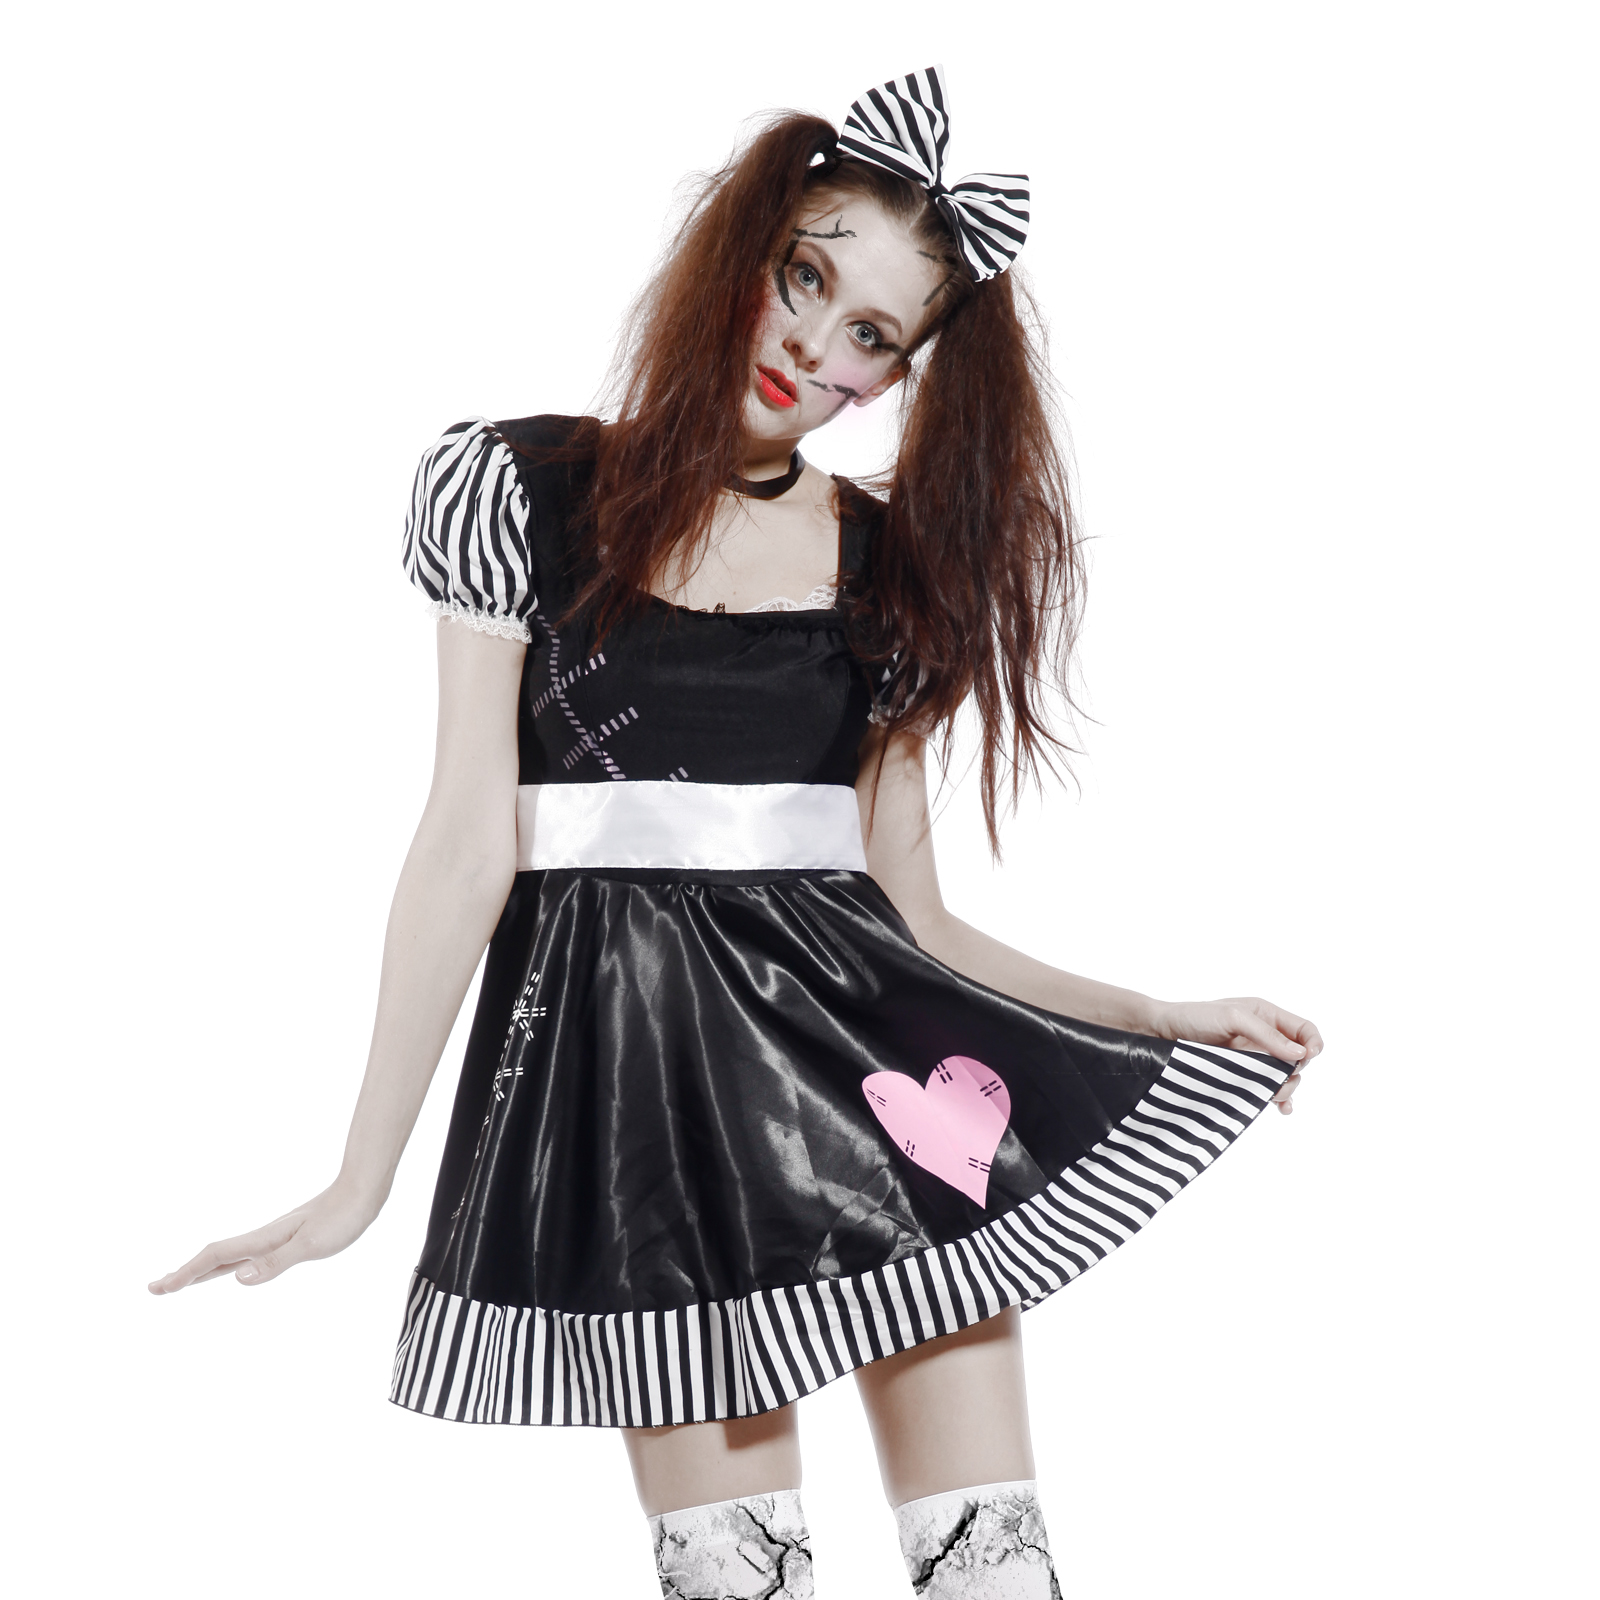 broken porcelain doll halloween costume - more information - kopihijau